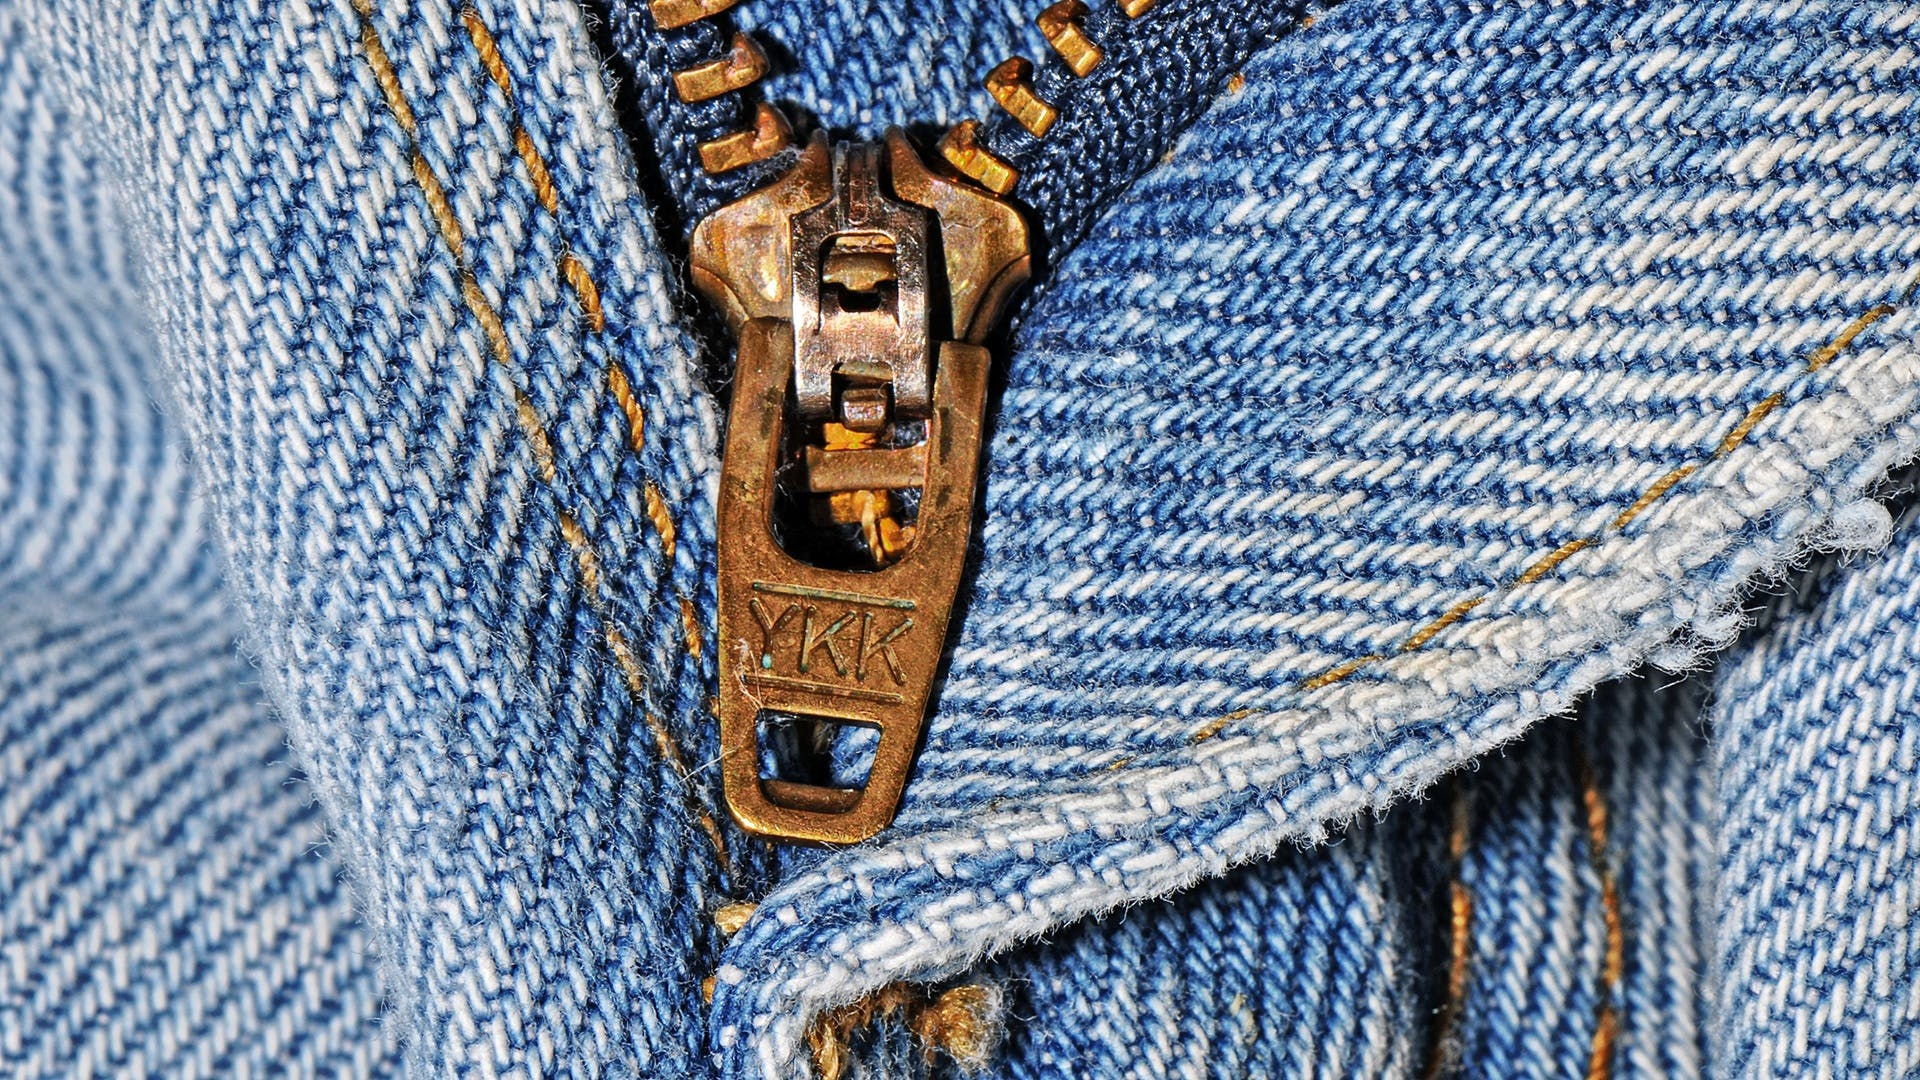 Brown Ykk Zipper and Blue Denim